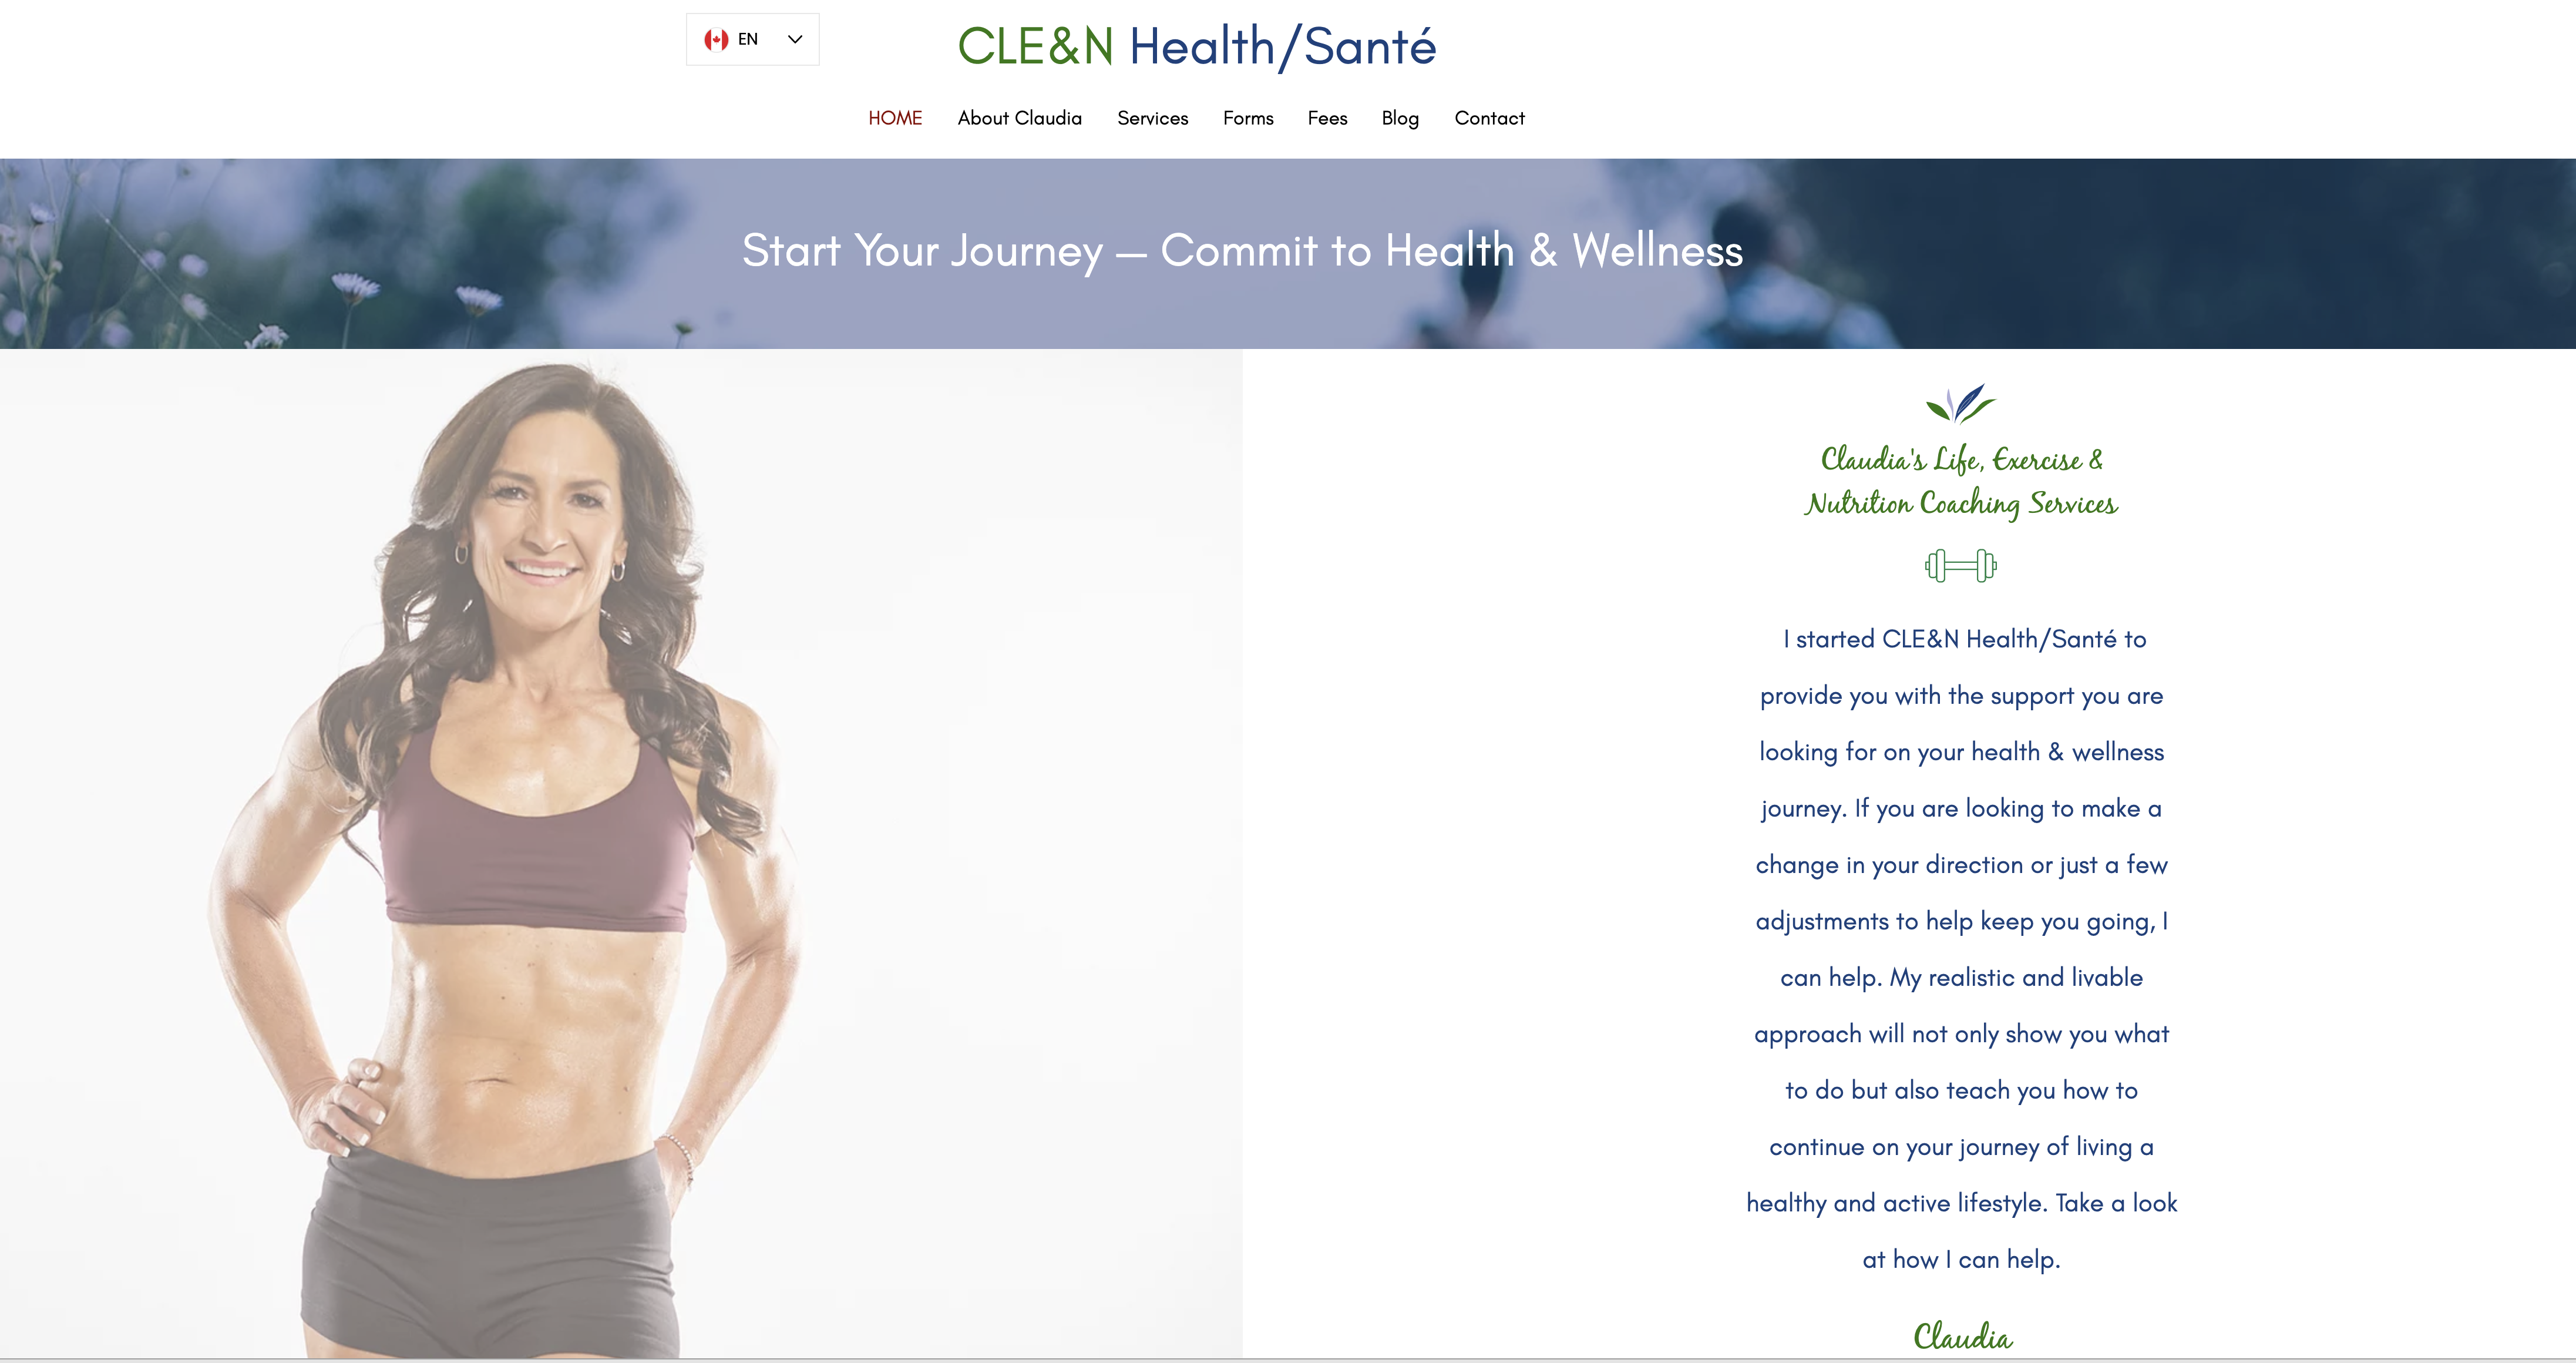 CLE&N Health Santé Multilingual website (French and English) for nutr...